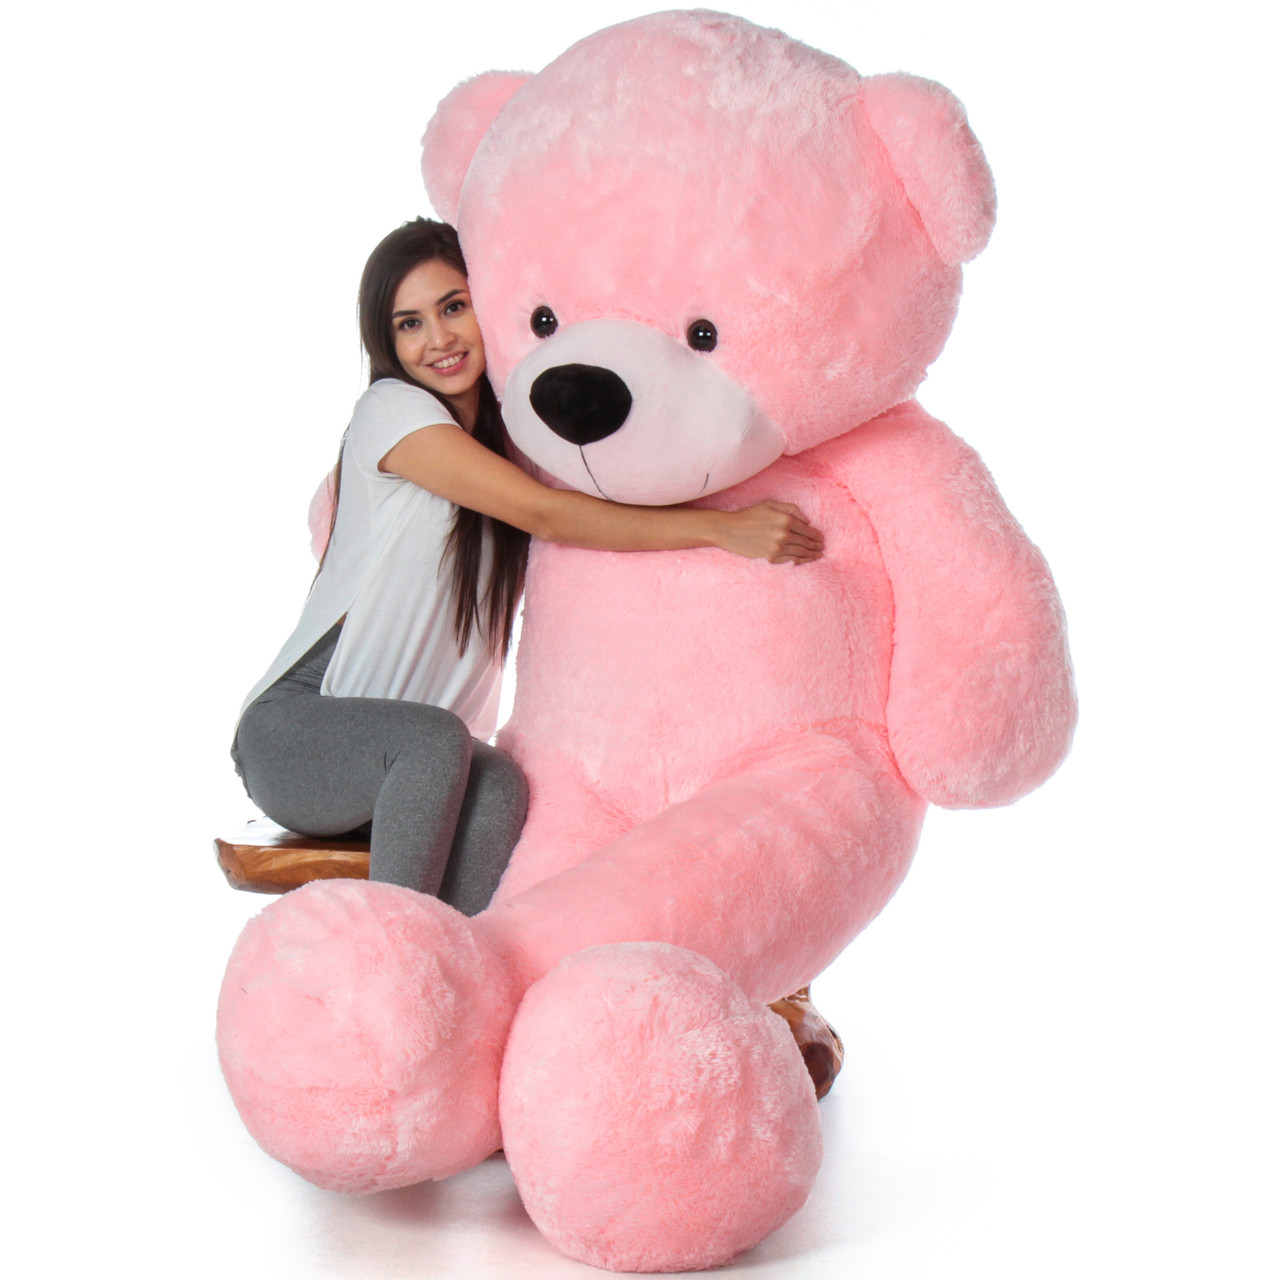 Biggest Pink Teddy Bear - Valentine's Day 7 Foot Teddy Bear by Giant Teddy